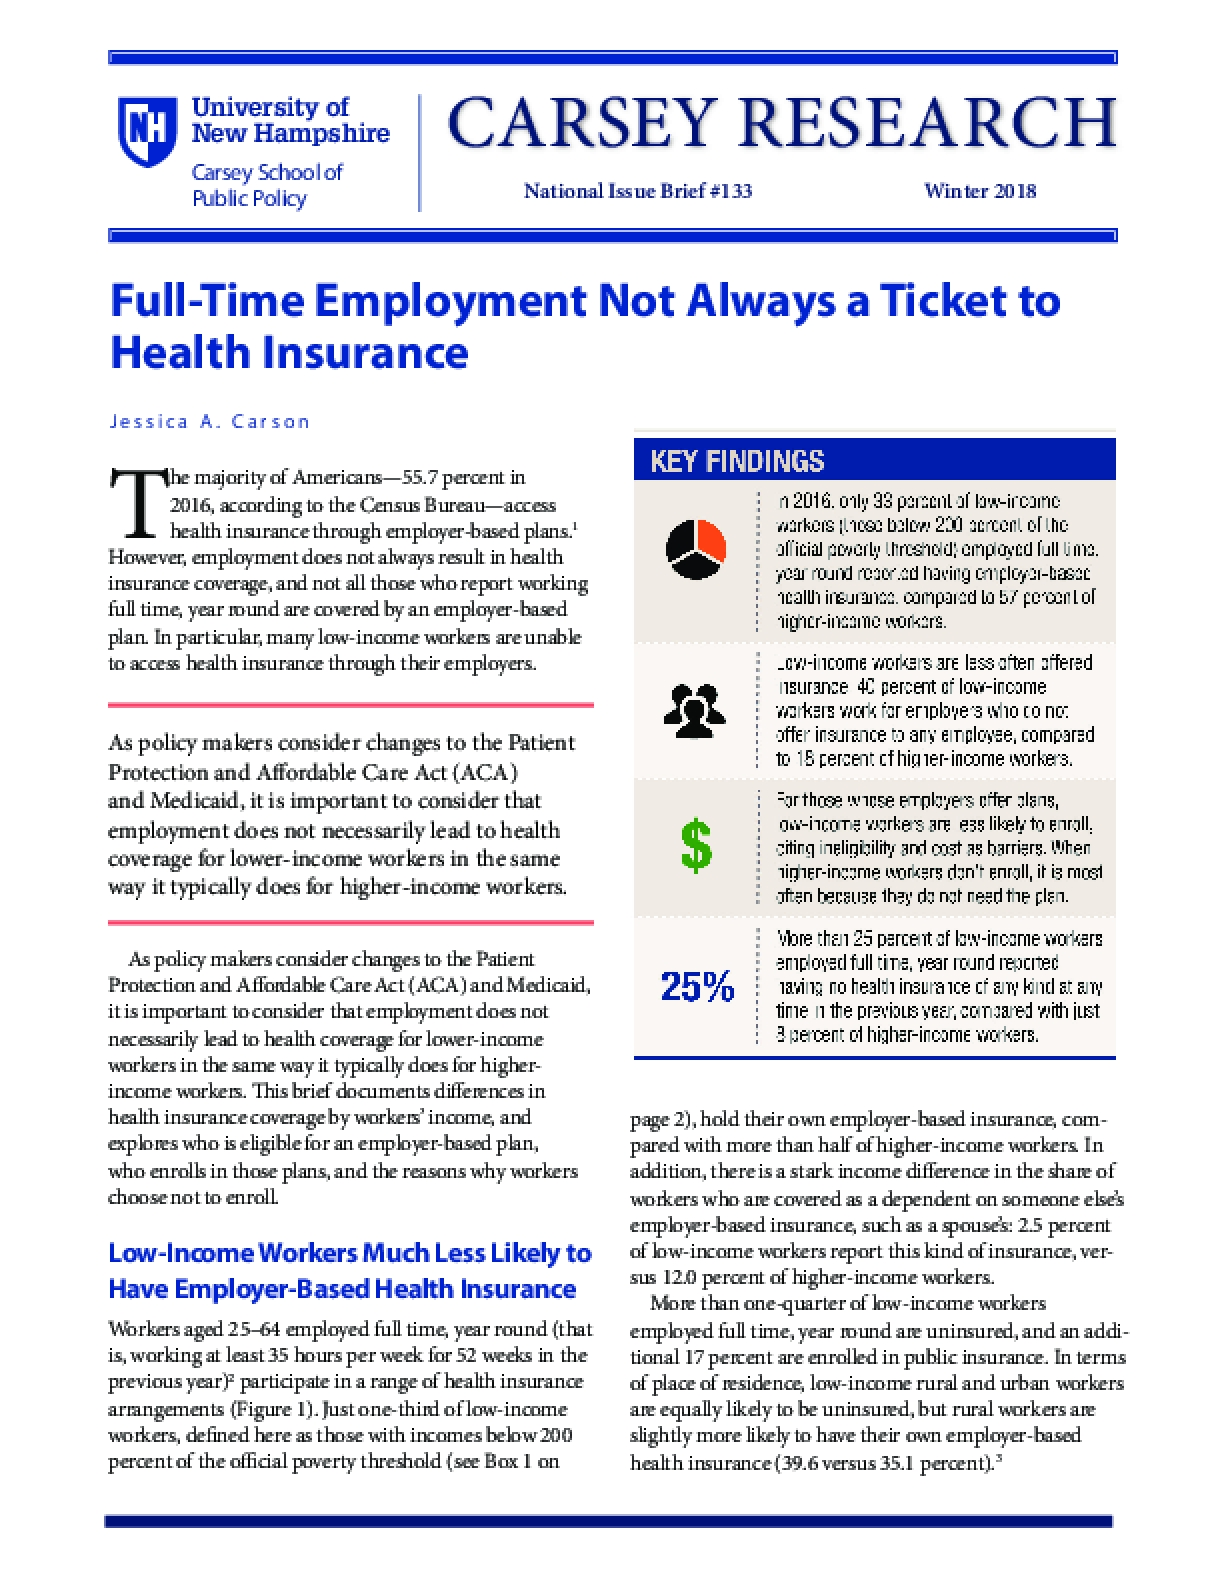 Full-Time Employment Not Always a Ticket to Health Insurance